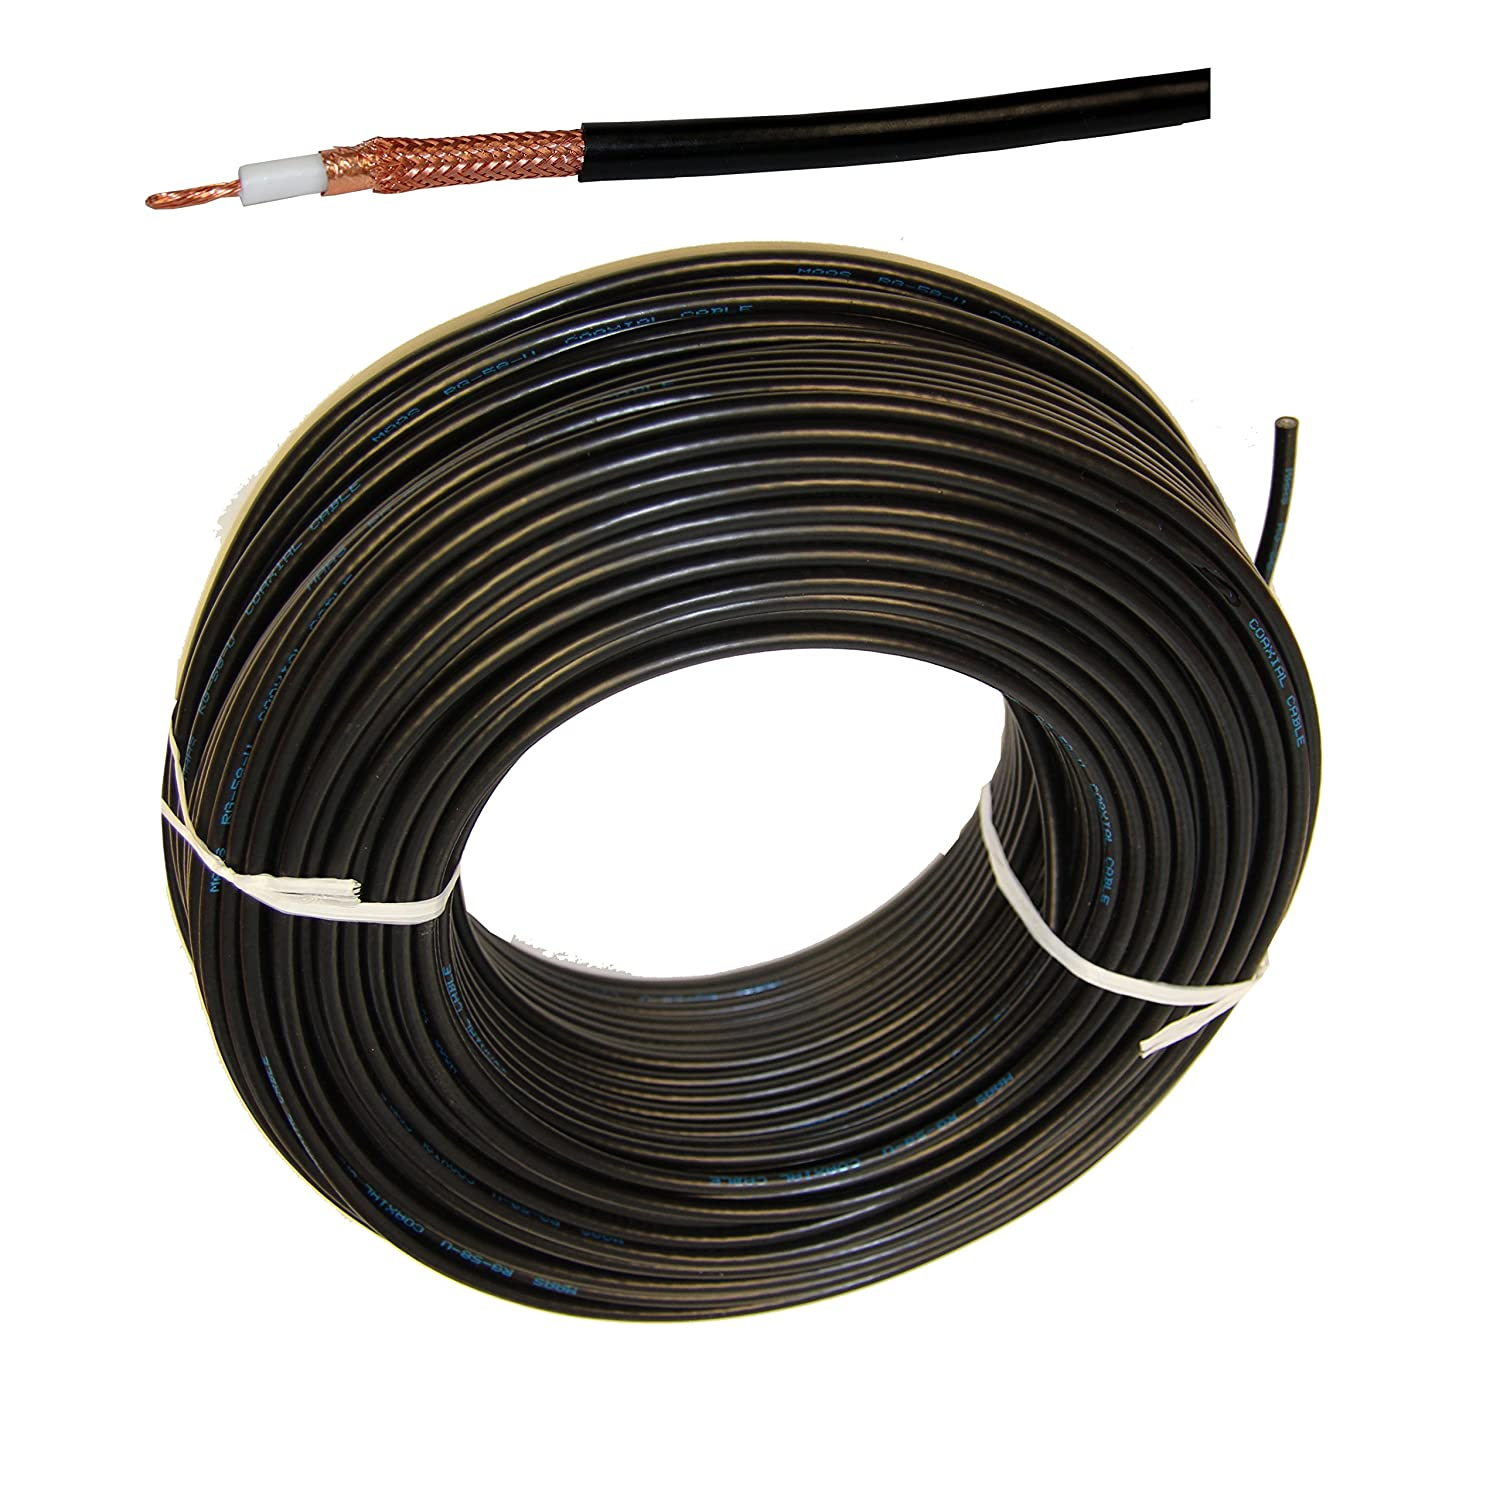 1 Meter Flexible aircell 7 Cable para FM Radio VHF en Marino ...